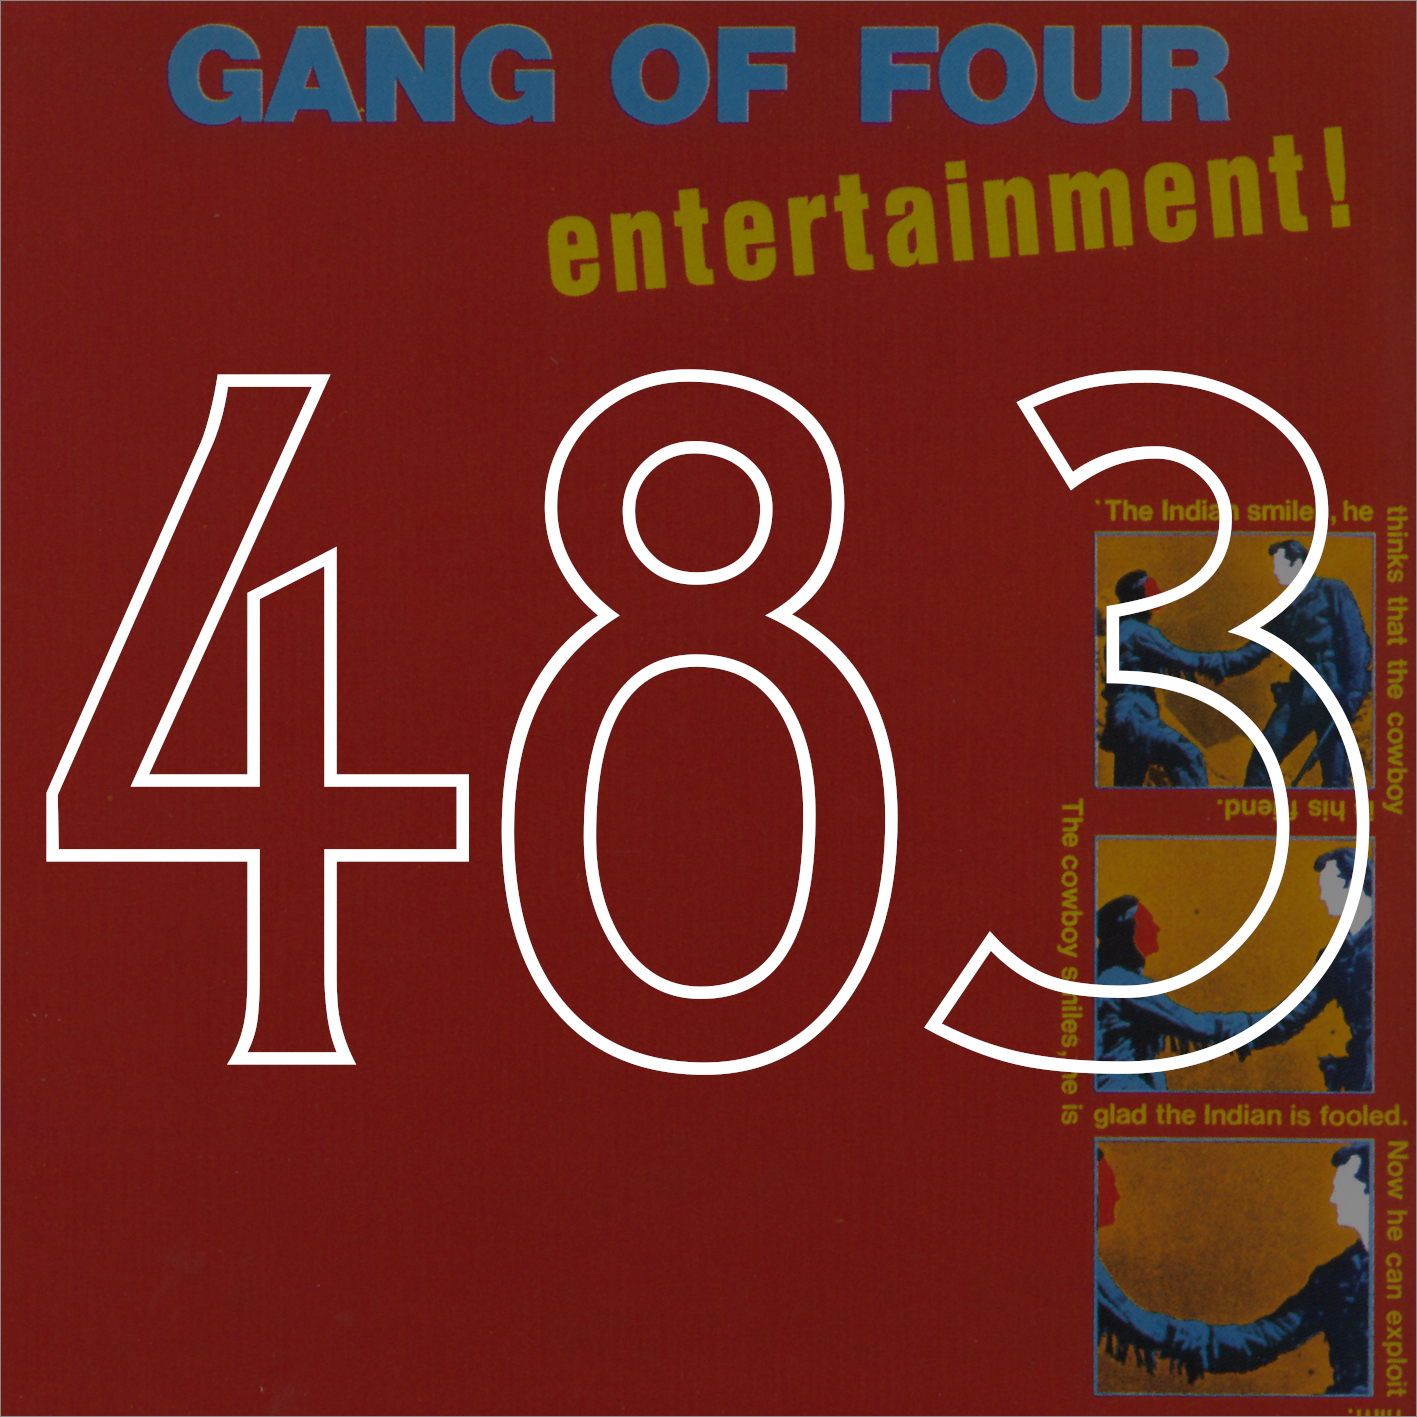 483: Gang of Four,